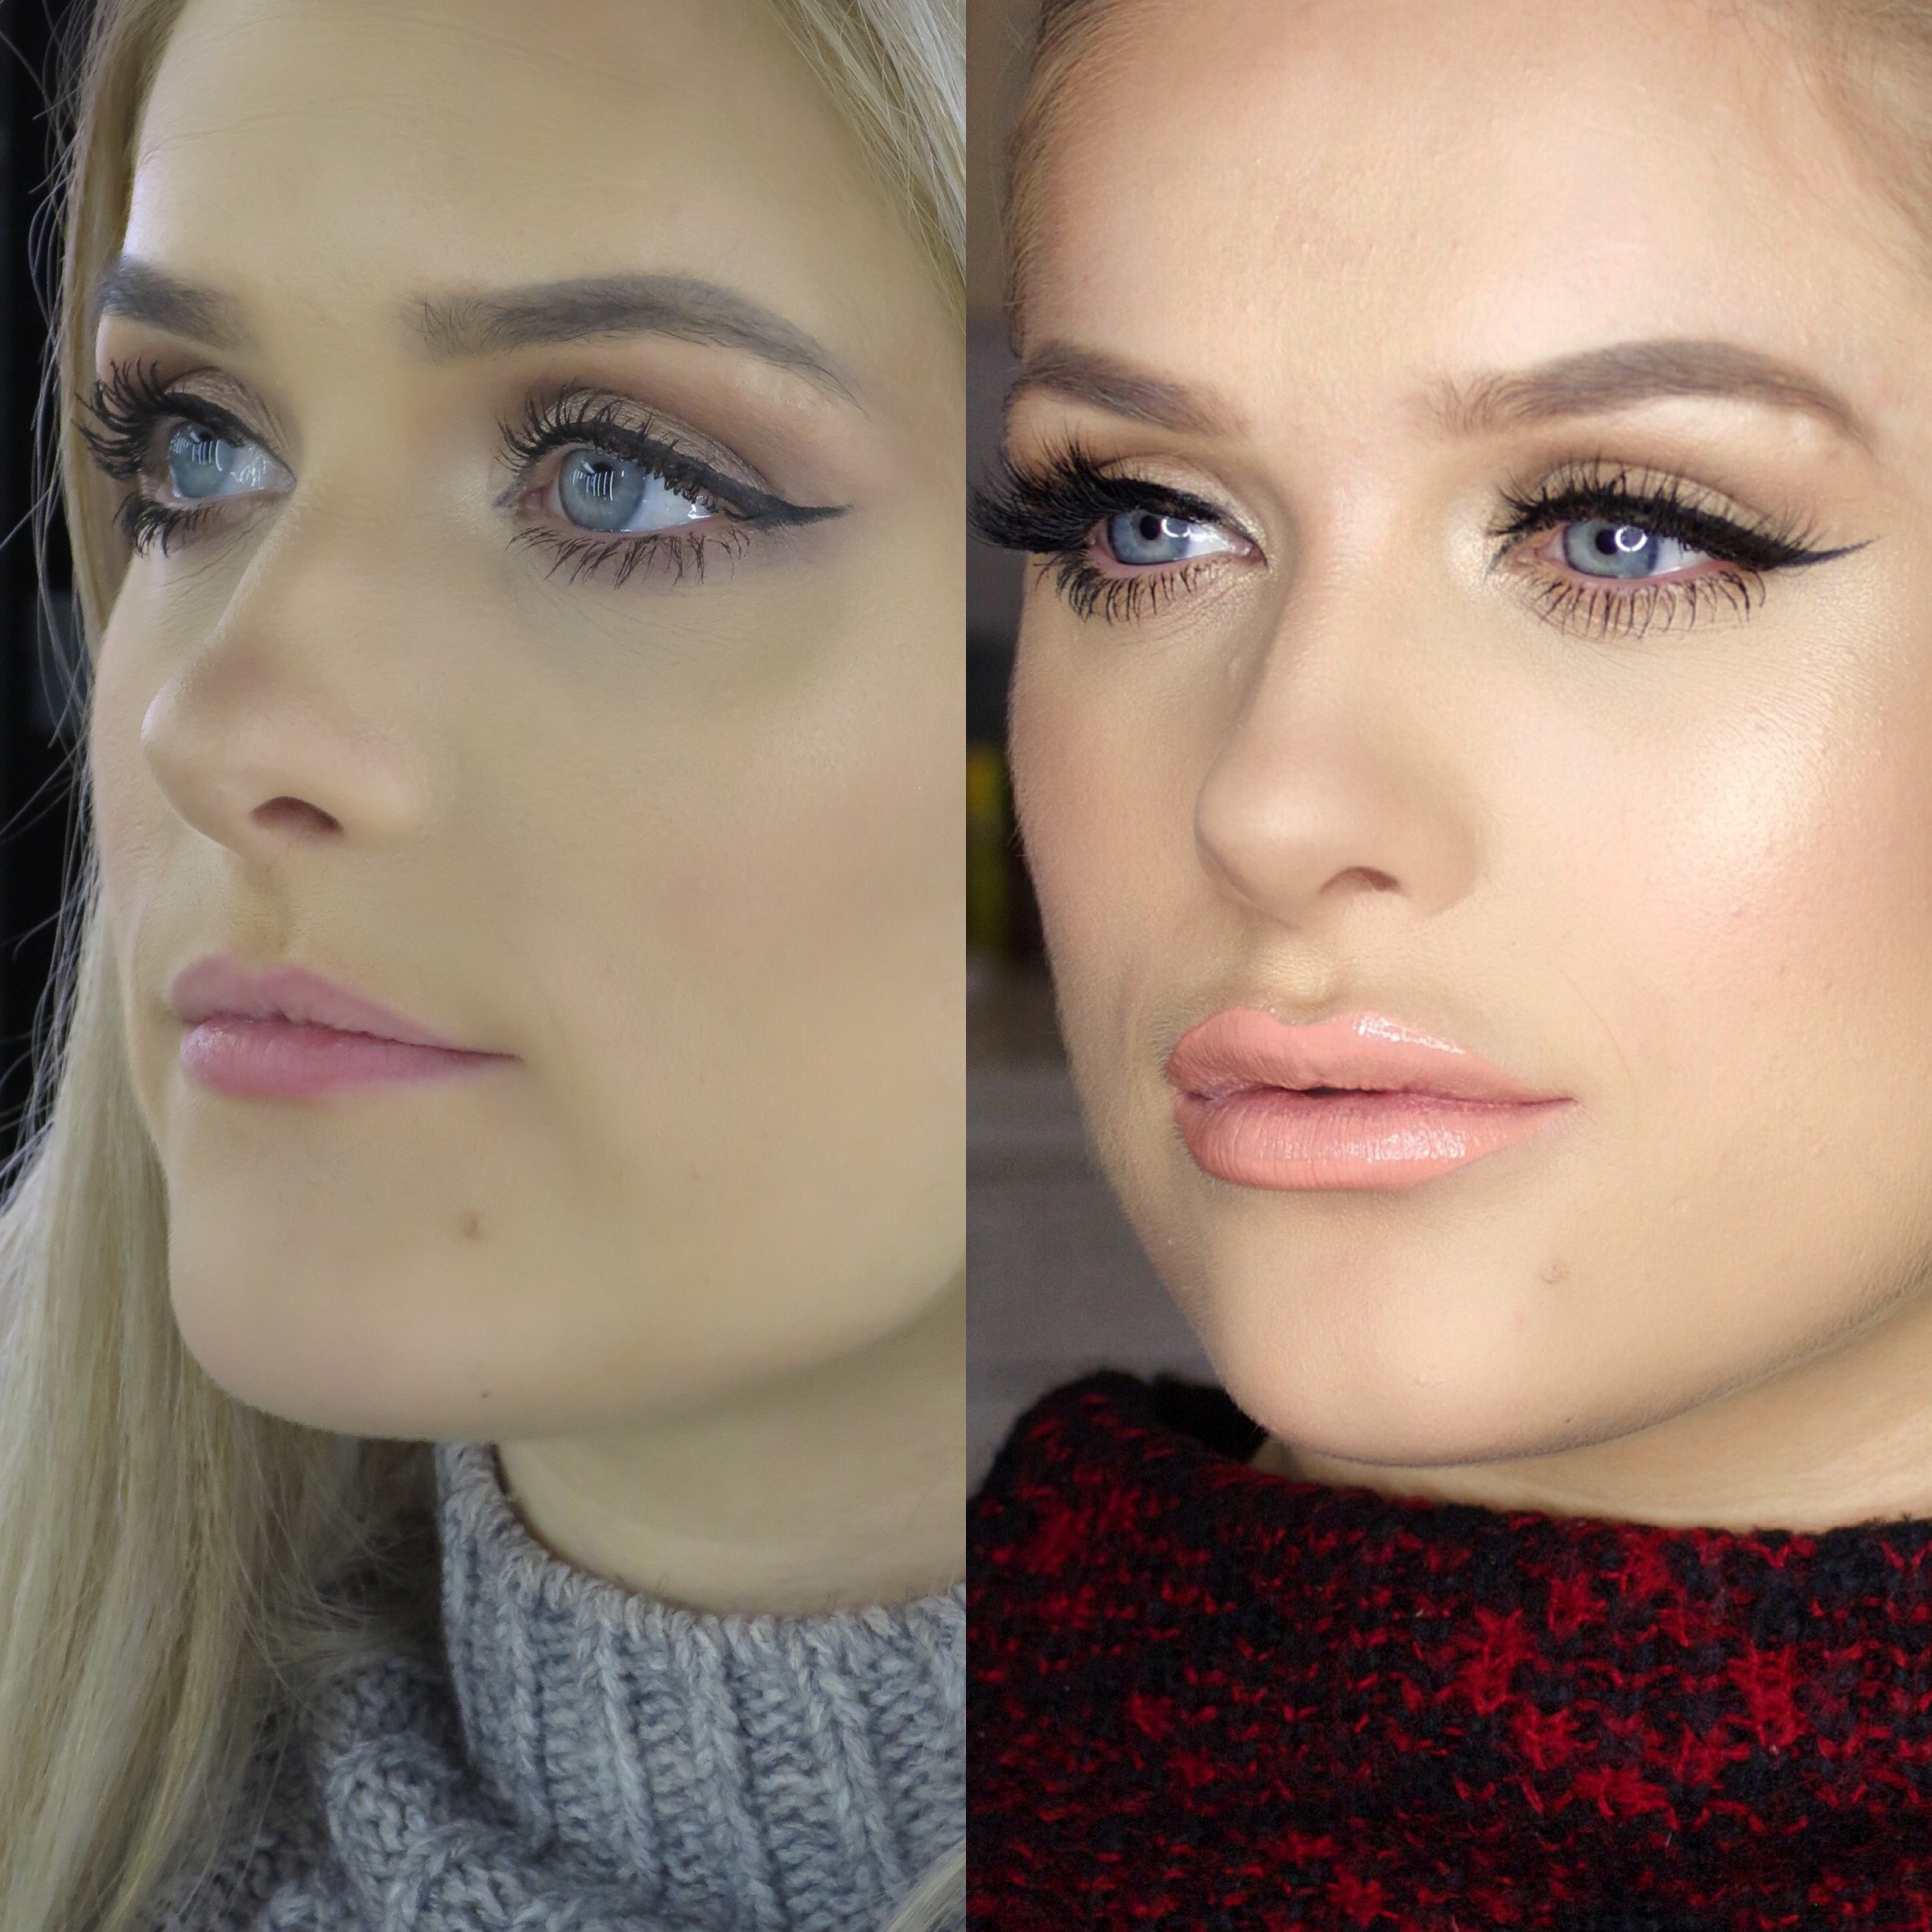 Lip Injections Before And After 1 Syringe